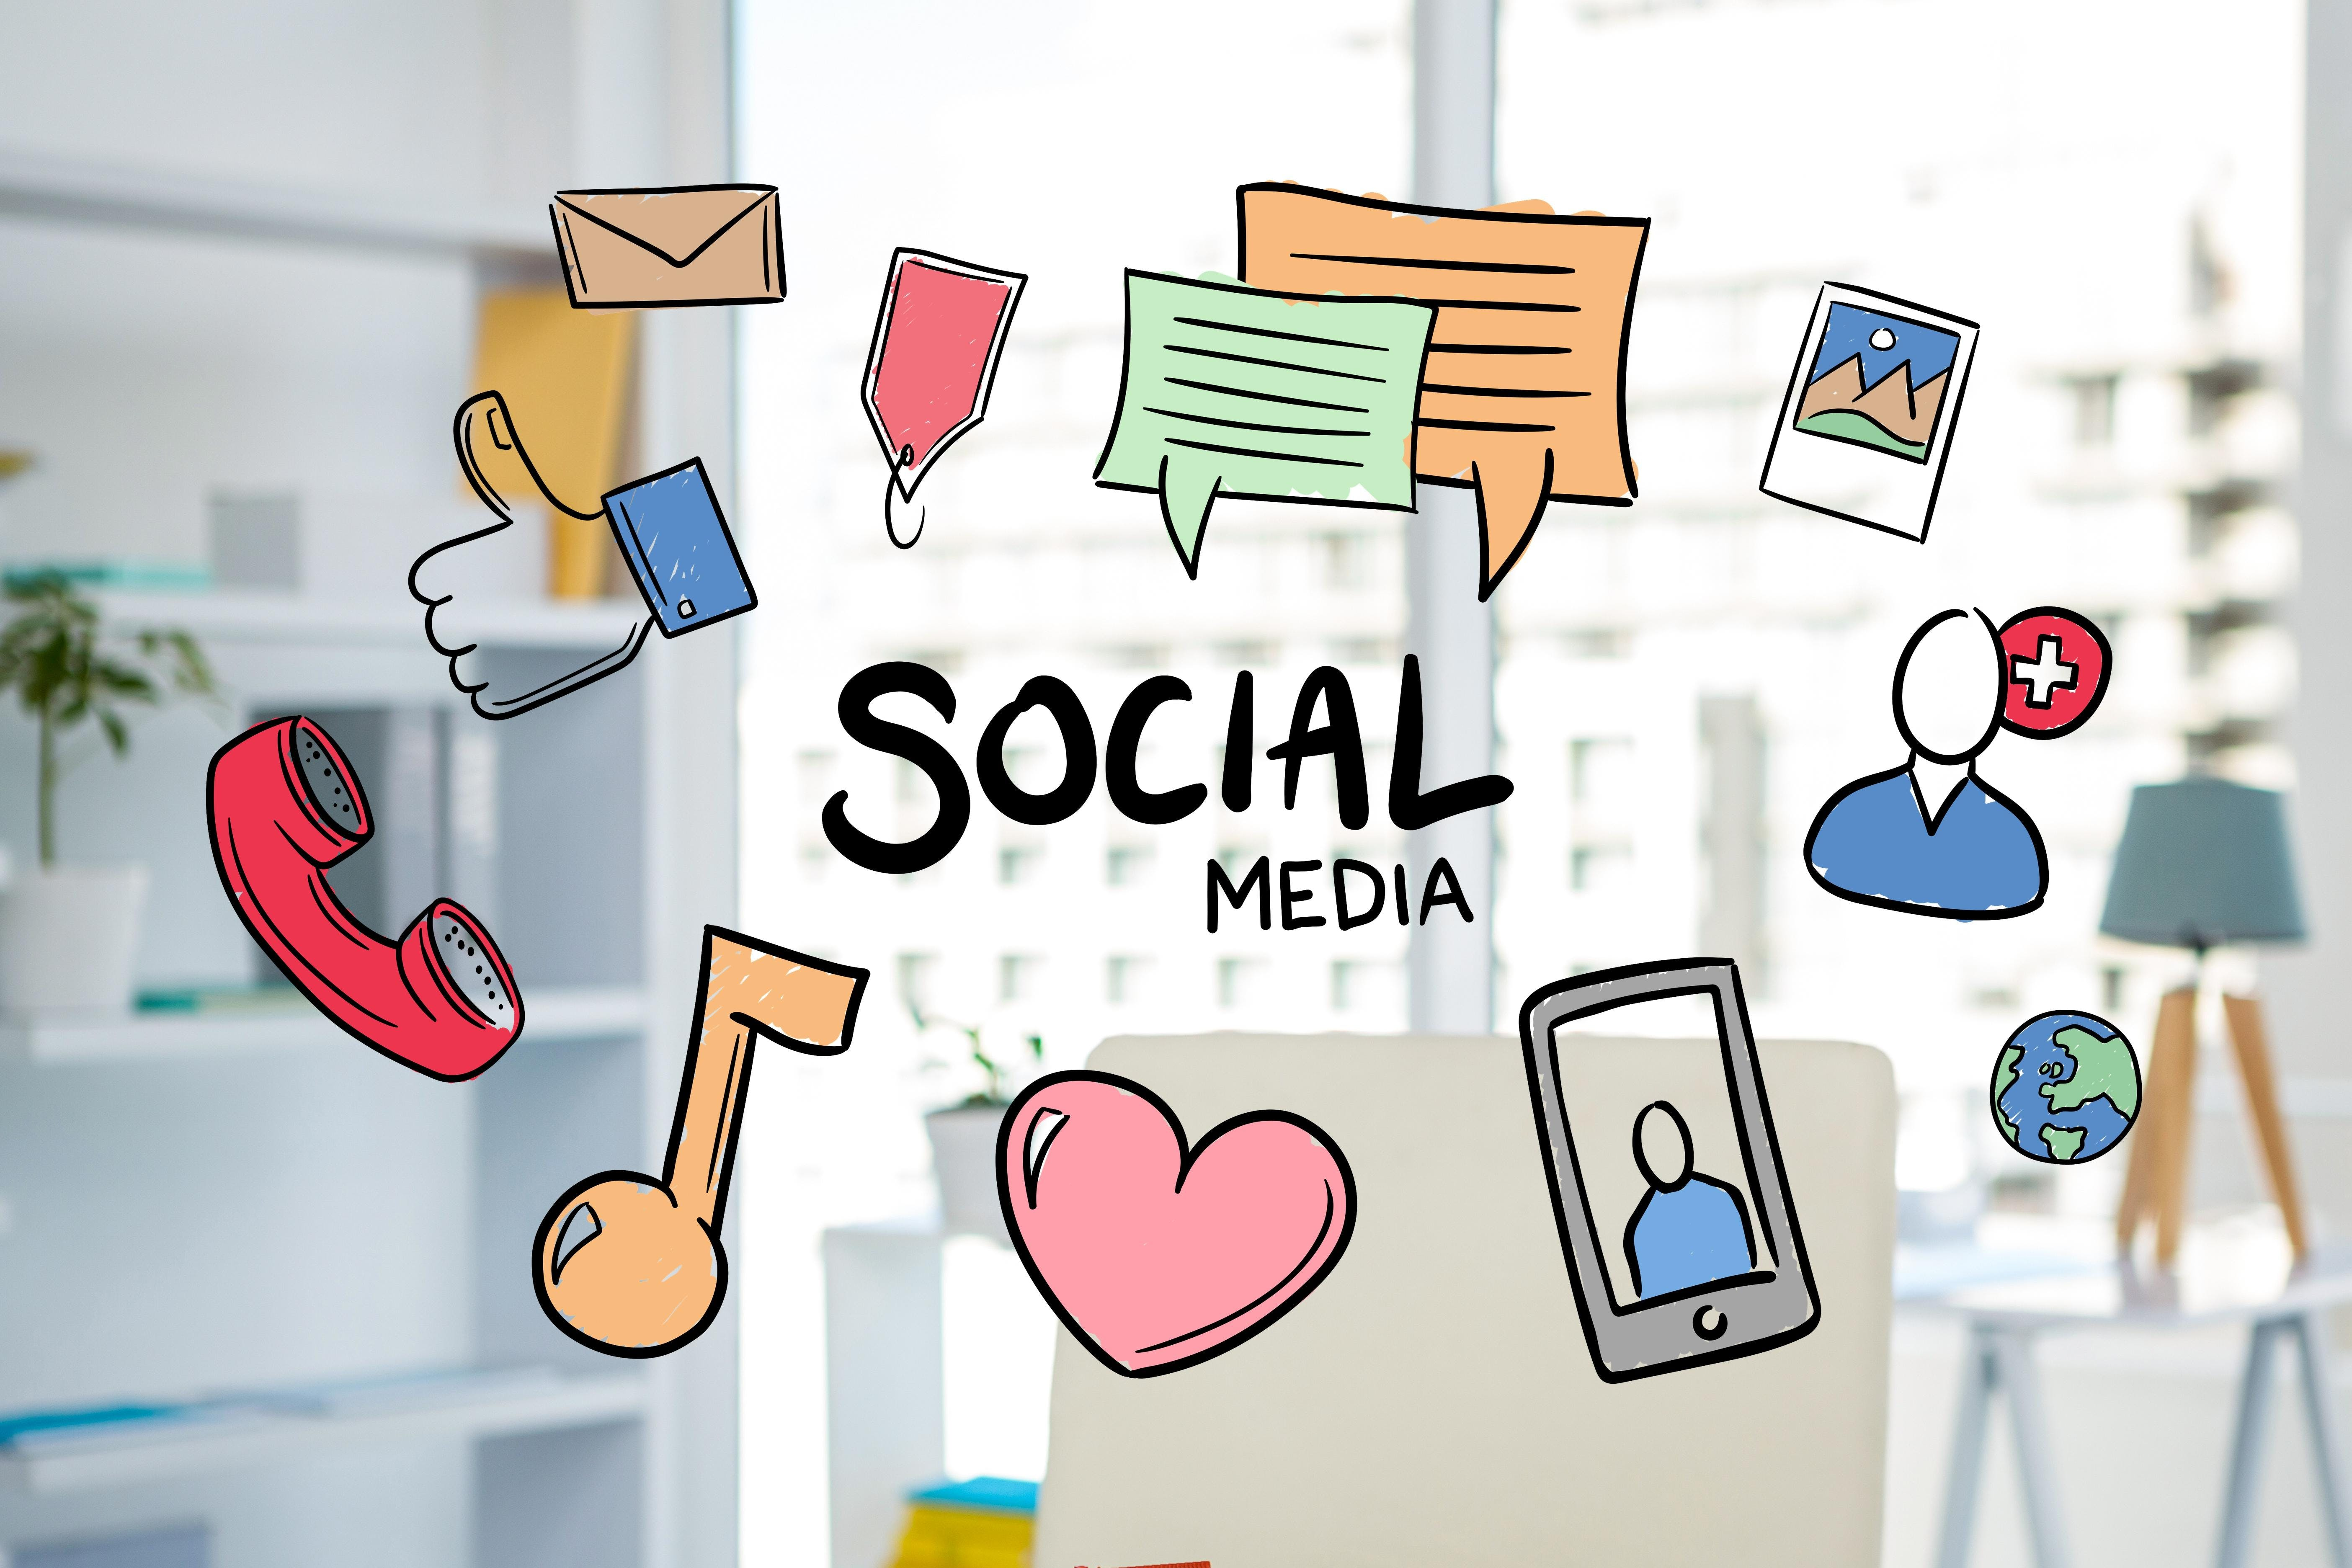 Corso Online di Social Media Marketing: prati